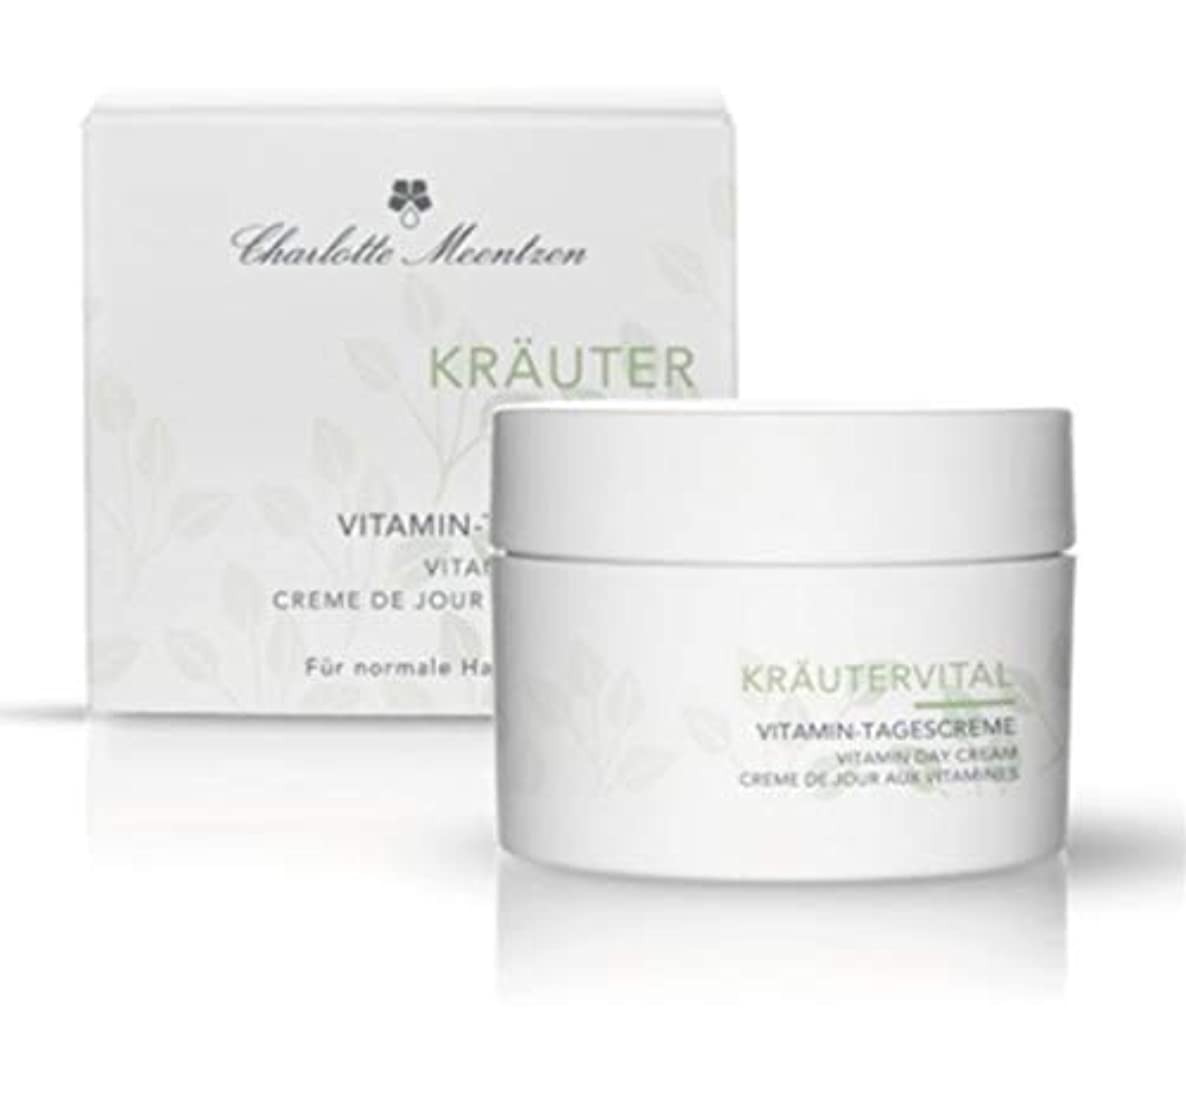 ええ戸棚行商人Charlotte Meentzen Krautervital Vitamin Day Cream 50ml c (50ml) [並行輸入品]